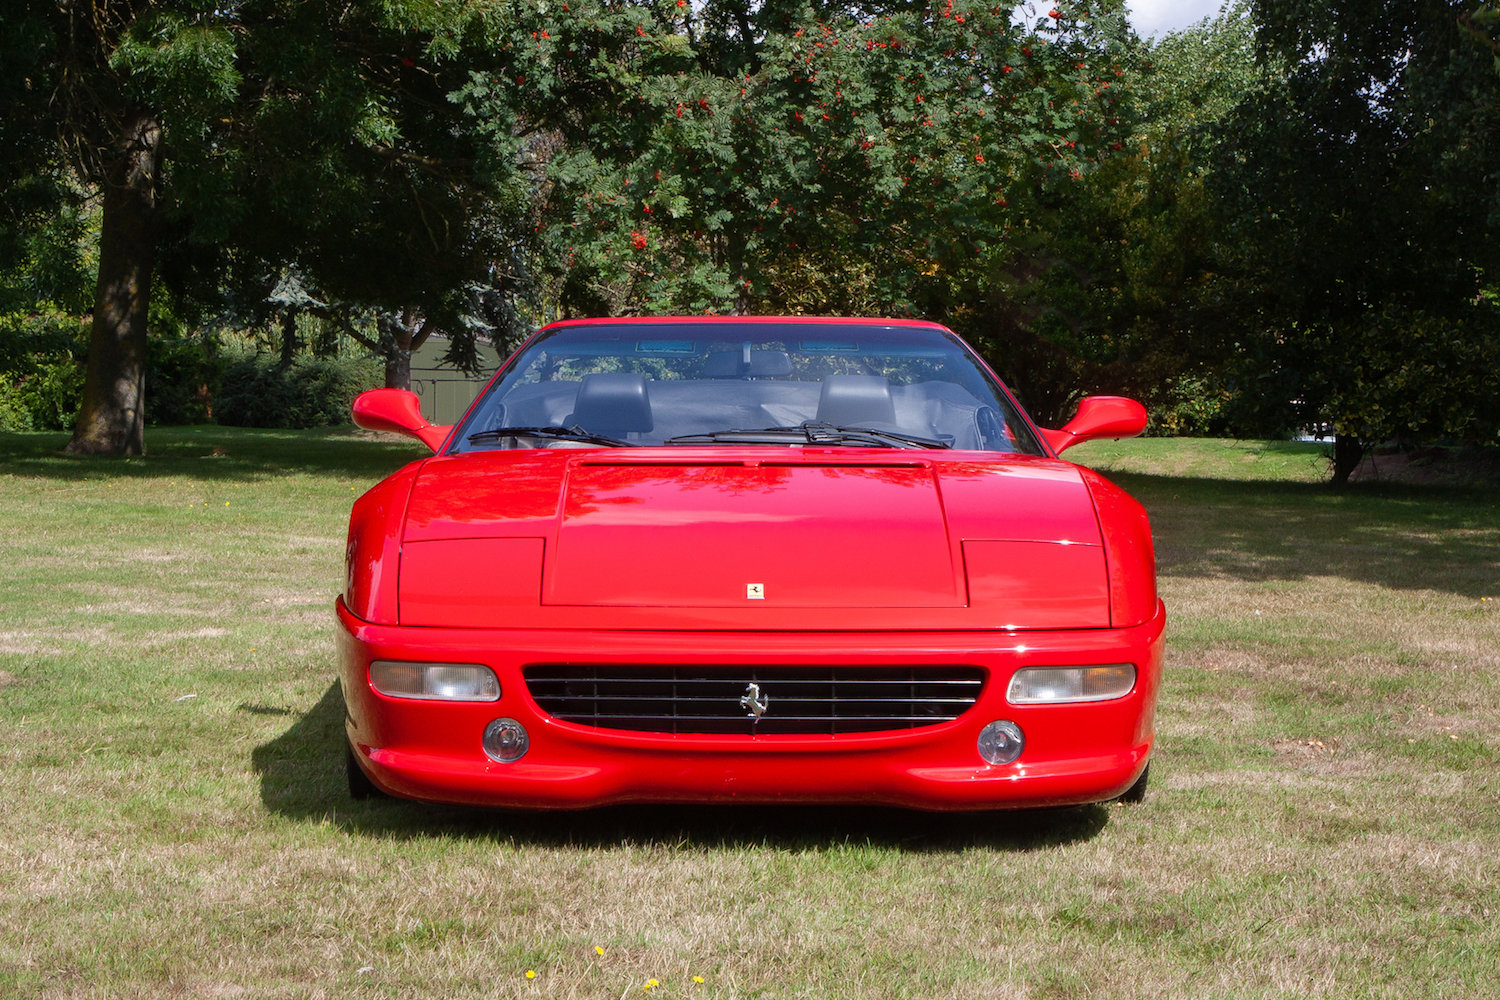 1996 Ferrari F355 Spider Manual LHD For Sale (picture 2 of 6)